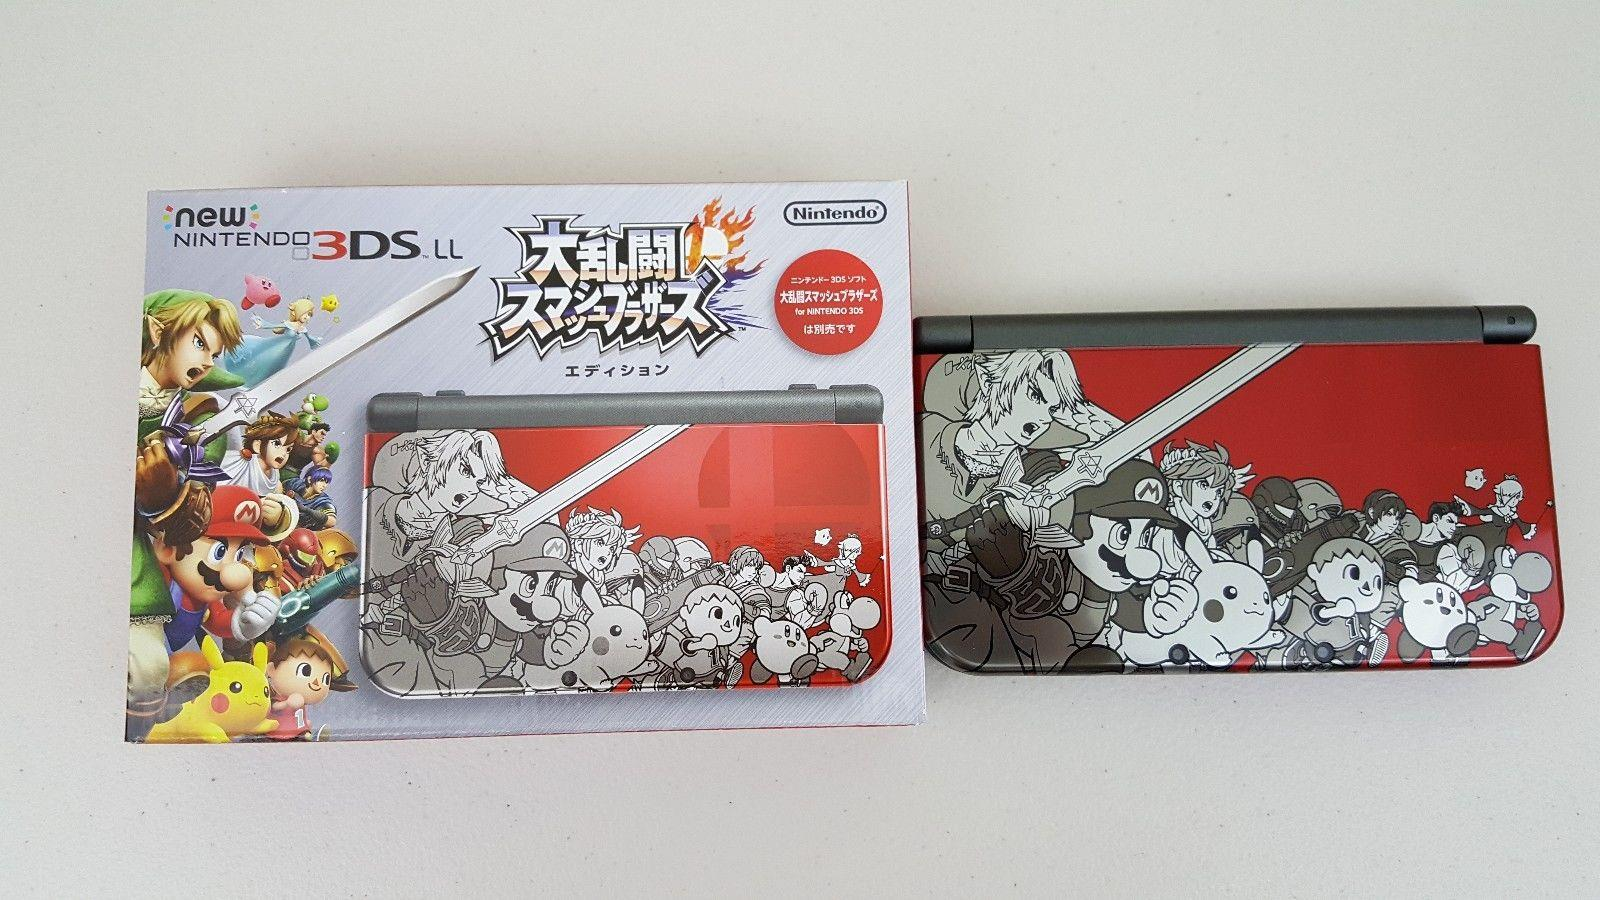 New Nintendo 3DS LL - Dairantou Smash Brothers Edition